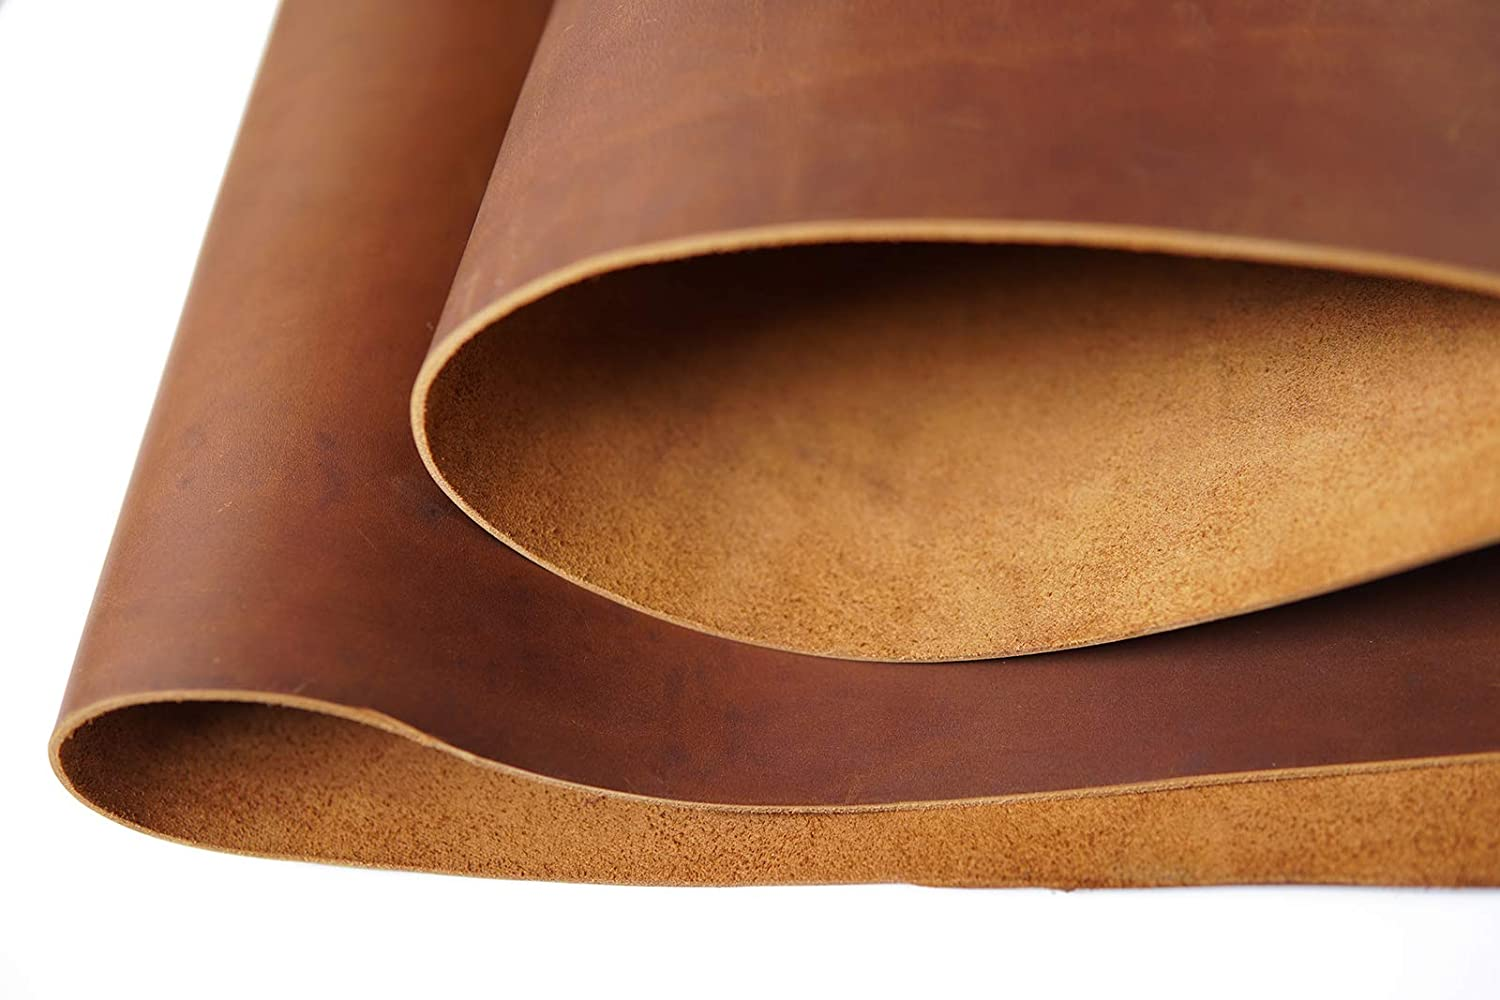 Bourbon Brown Tooling Leather Square 2.0mm Thick Finished Full Grain Cow Hide Leather Crafts Tooling Sewing Hobby Workshop Crafting Leather